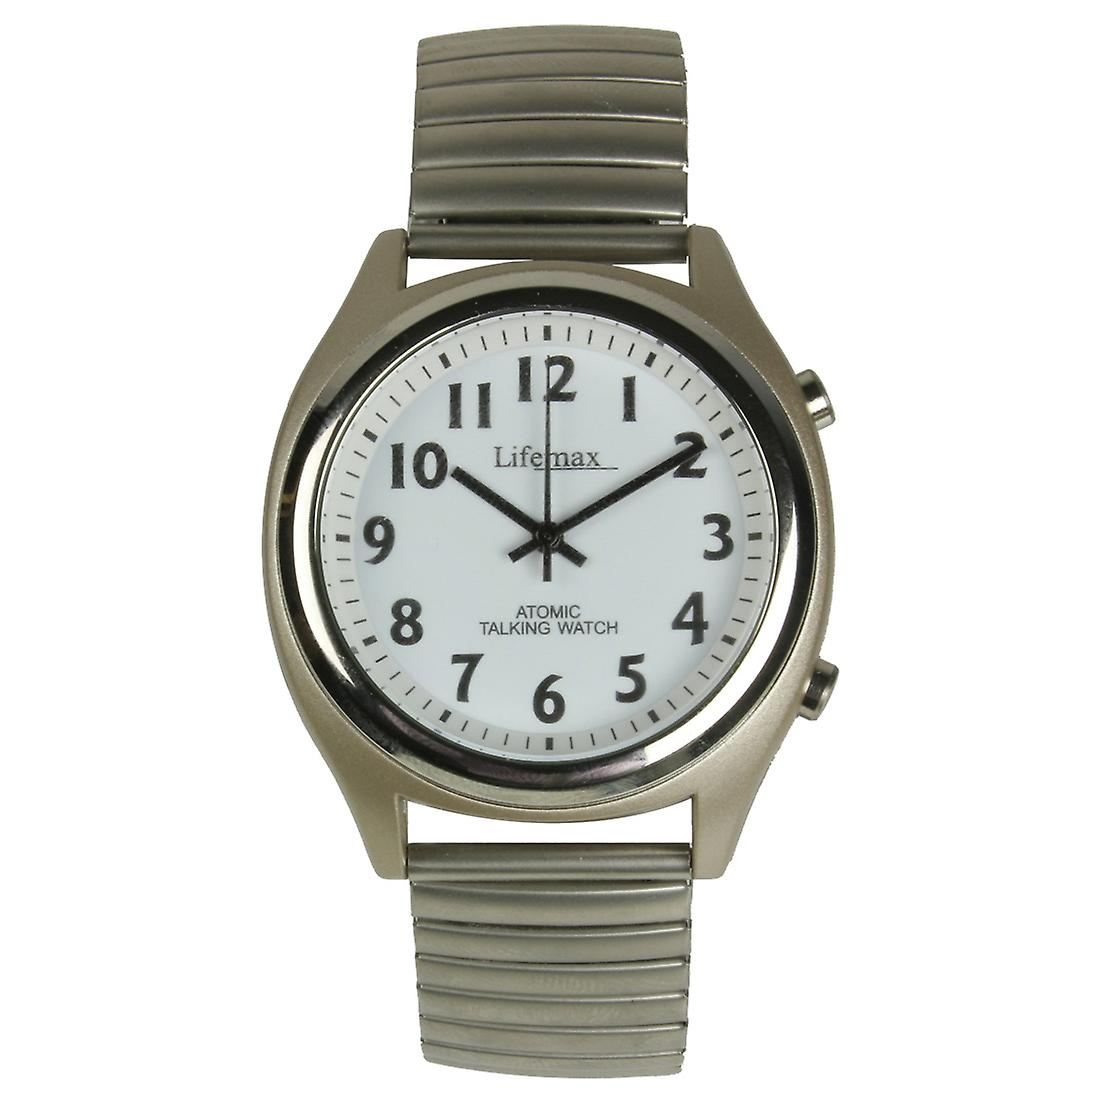 Talking Atomic Watch - Gents Expandable Bracelet